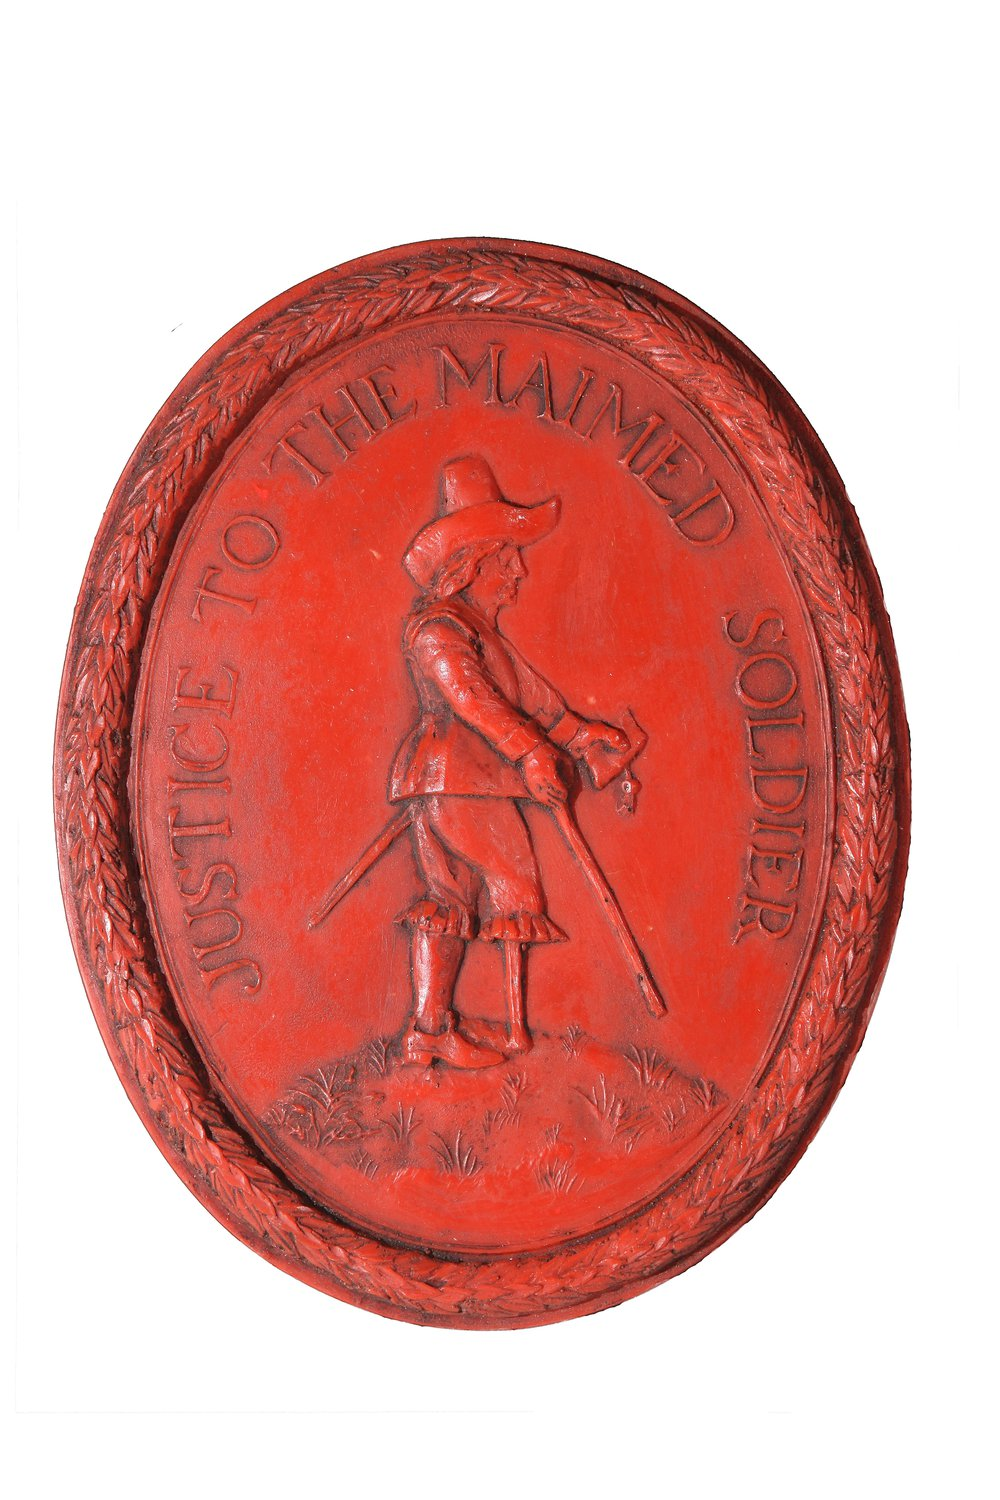 Reproduction of the seal for the parliamentary committee for sick and maimed soldiers. Extant original is in the Wiltshire and Swindon Record Office